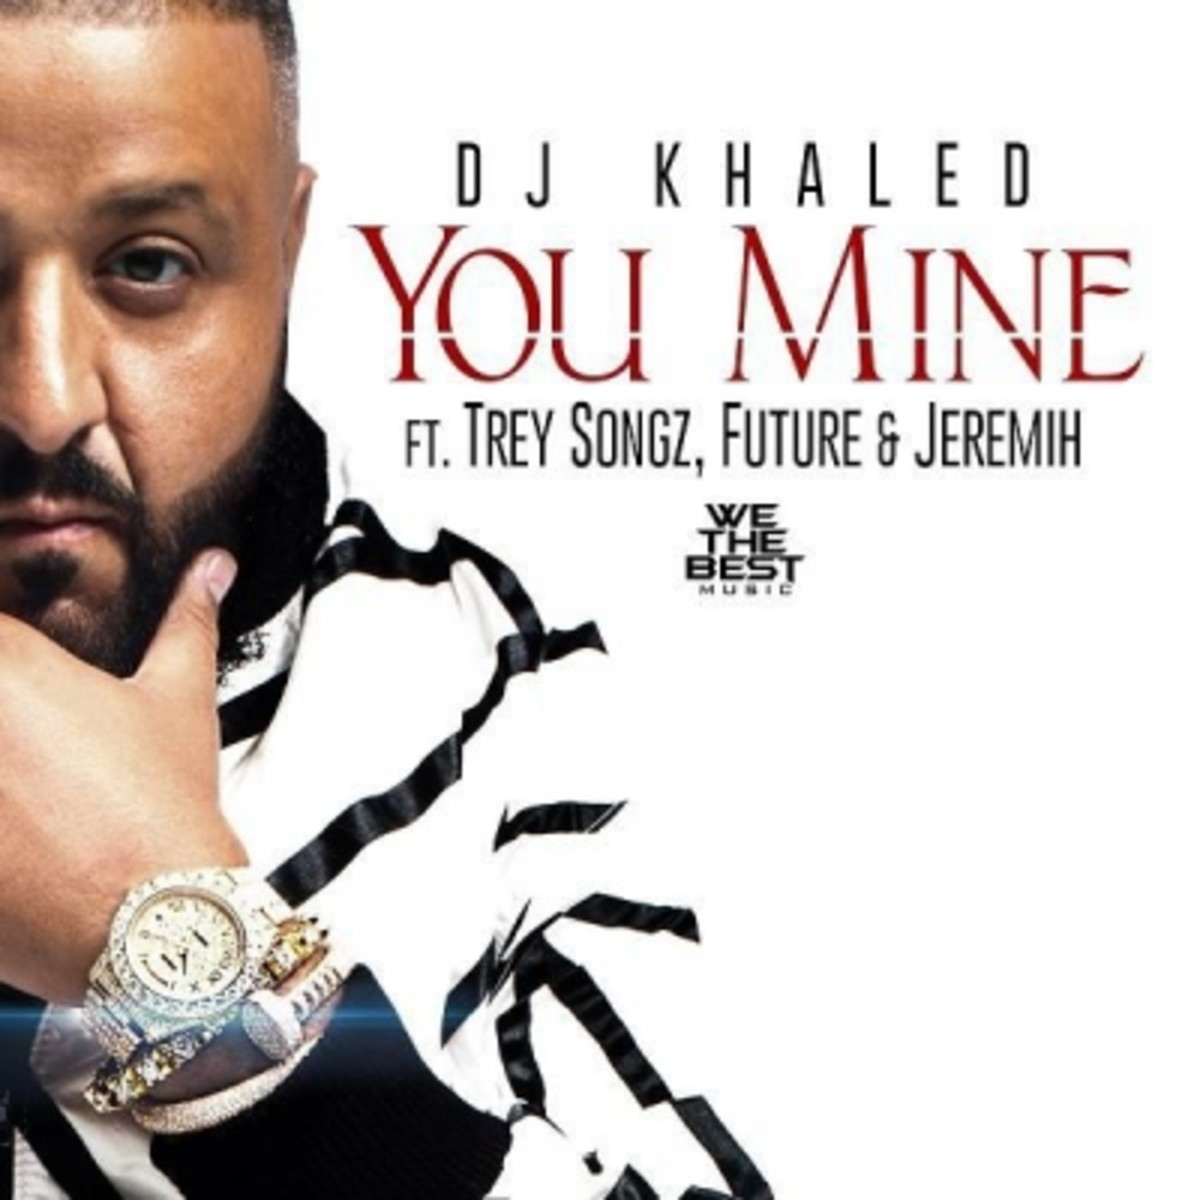 dj-khaled-you-mine.jpg